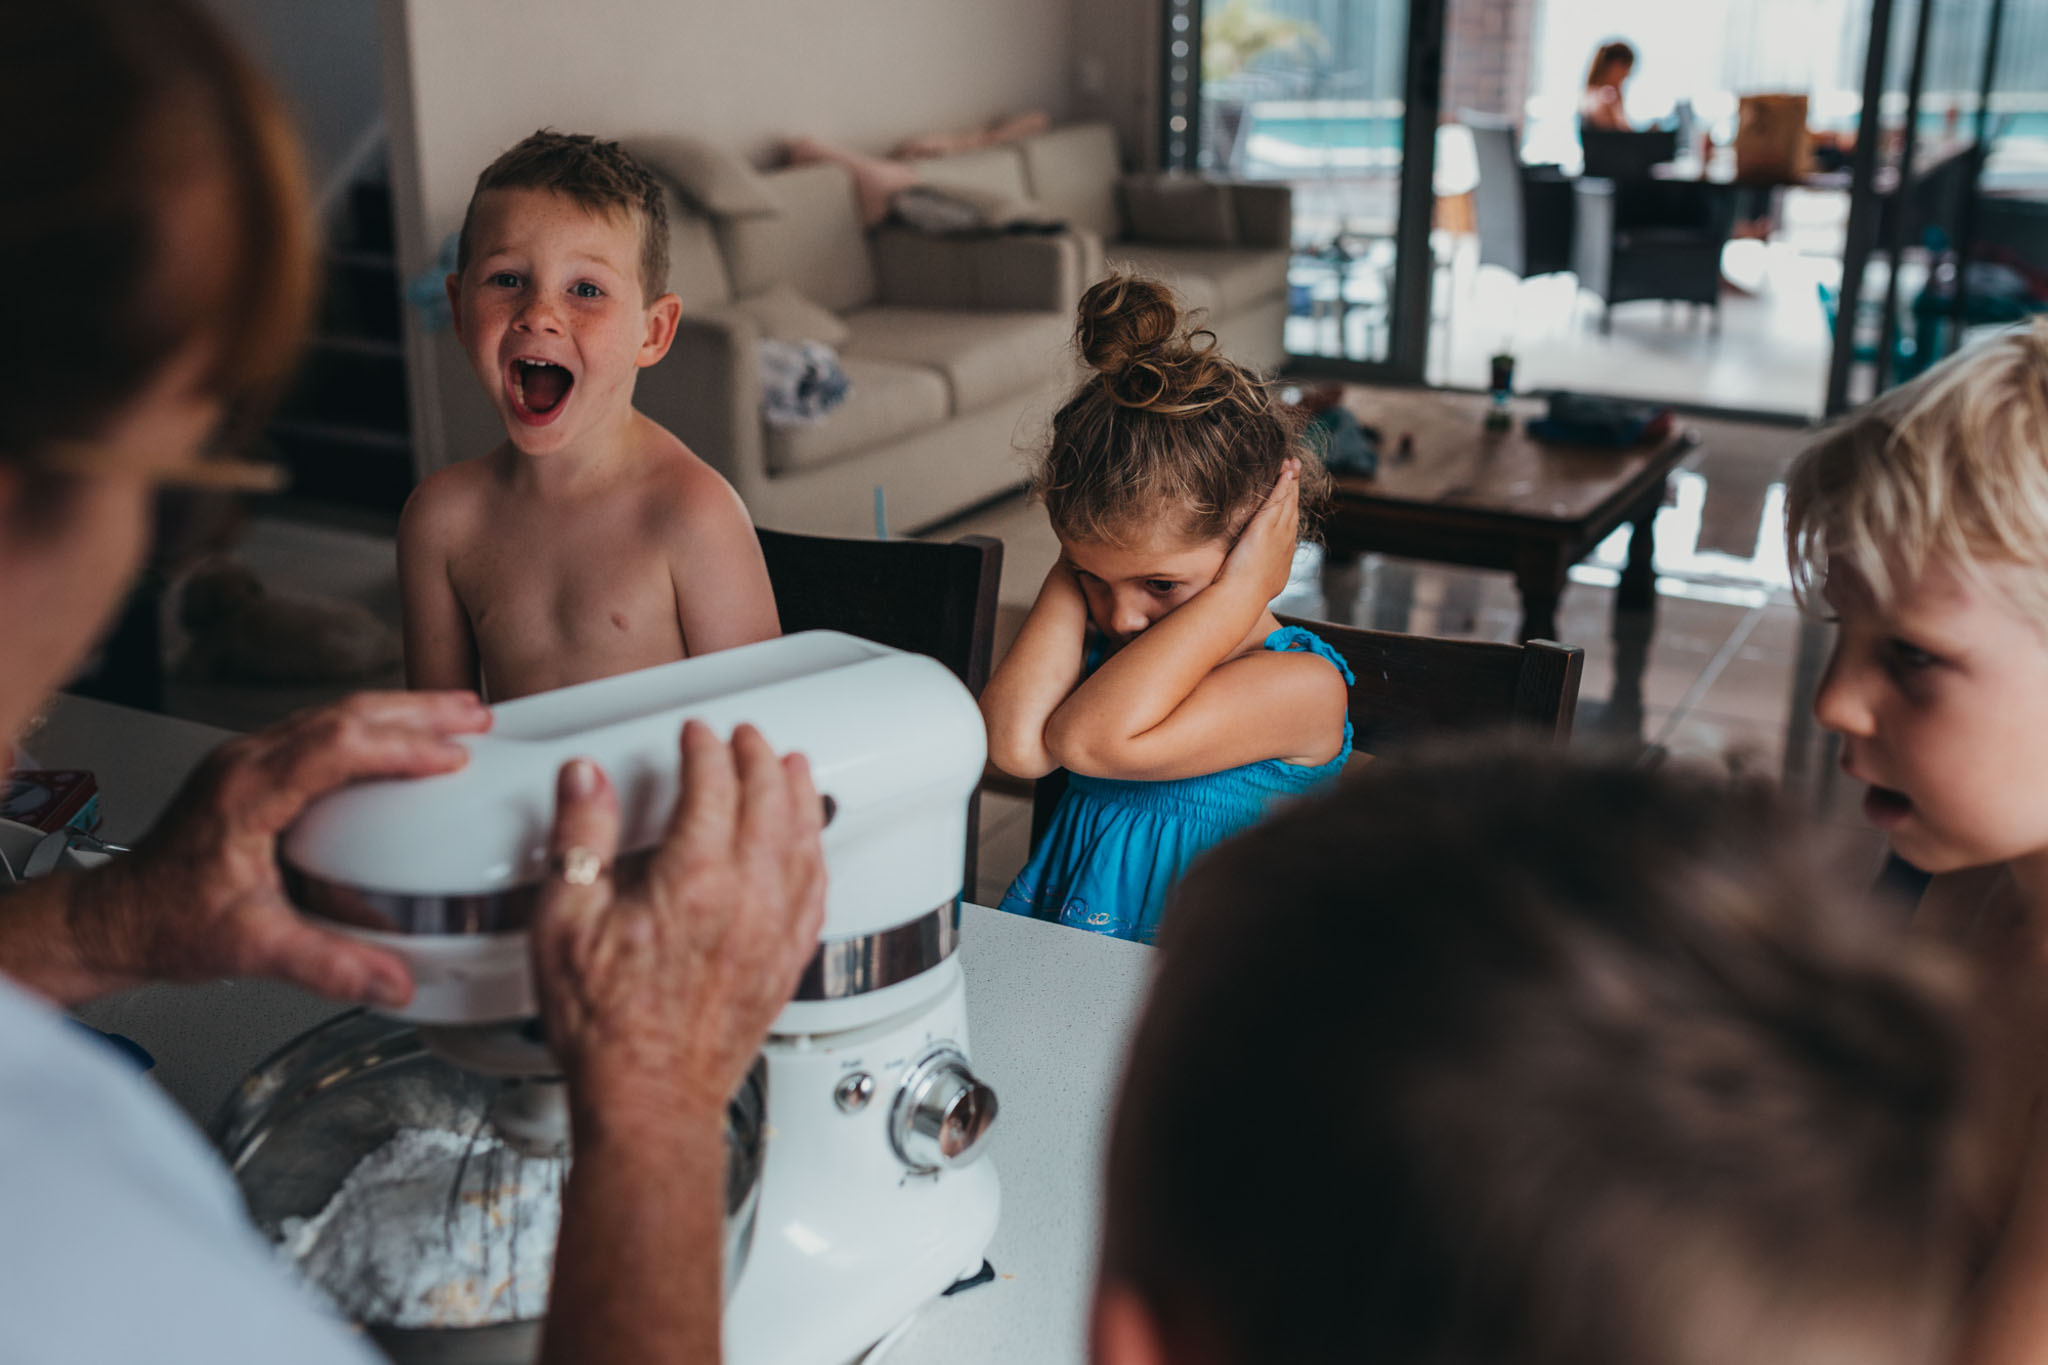 children-react-to-loud-blender-by-covering-ears-and-screaming-when-baking-cookies-with-grandma-gold-coast-family-documentary-moment